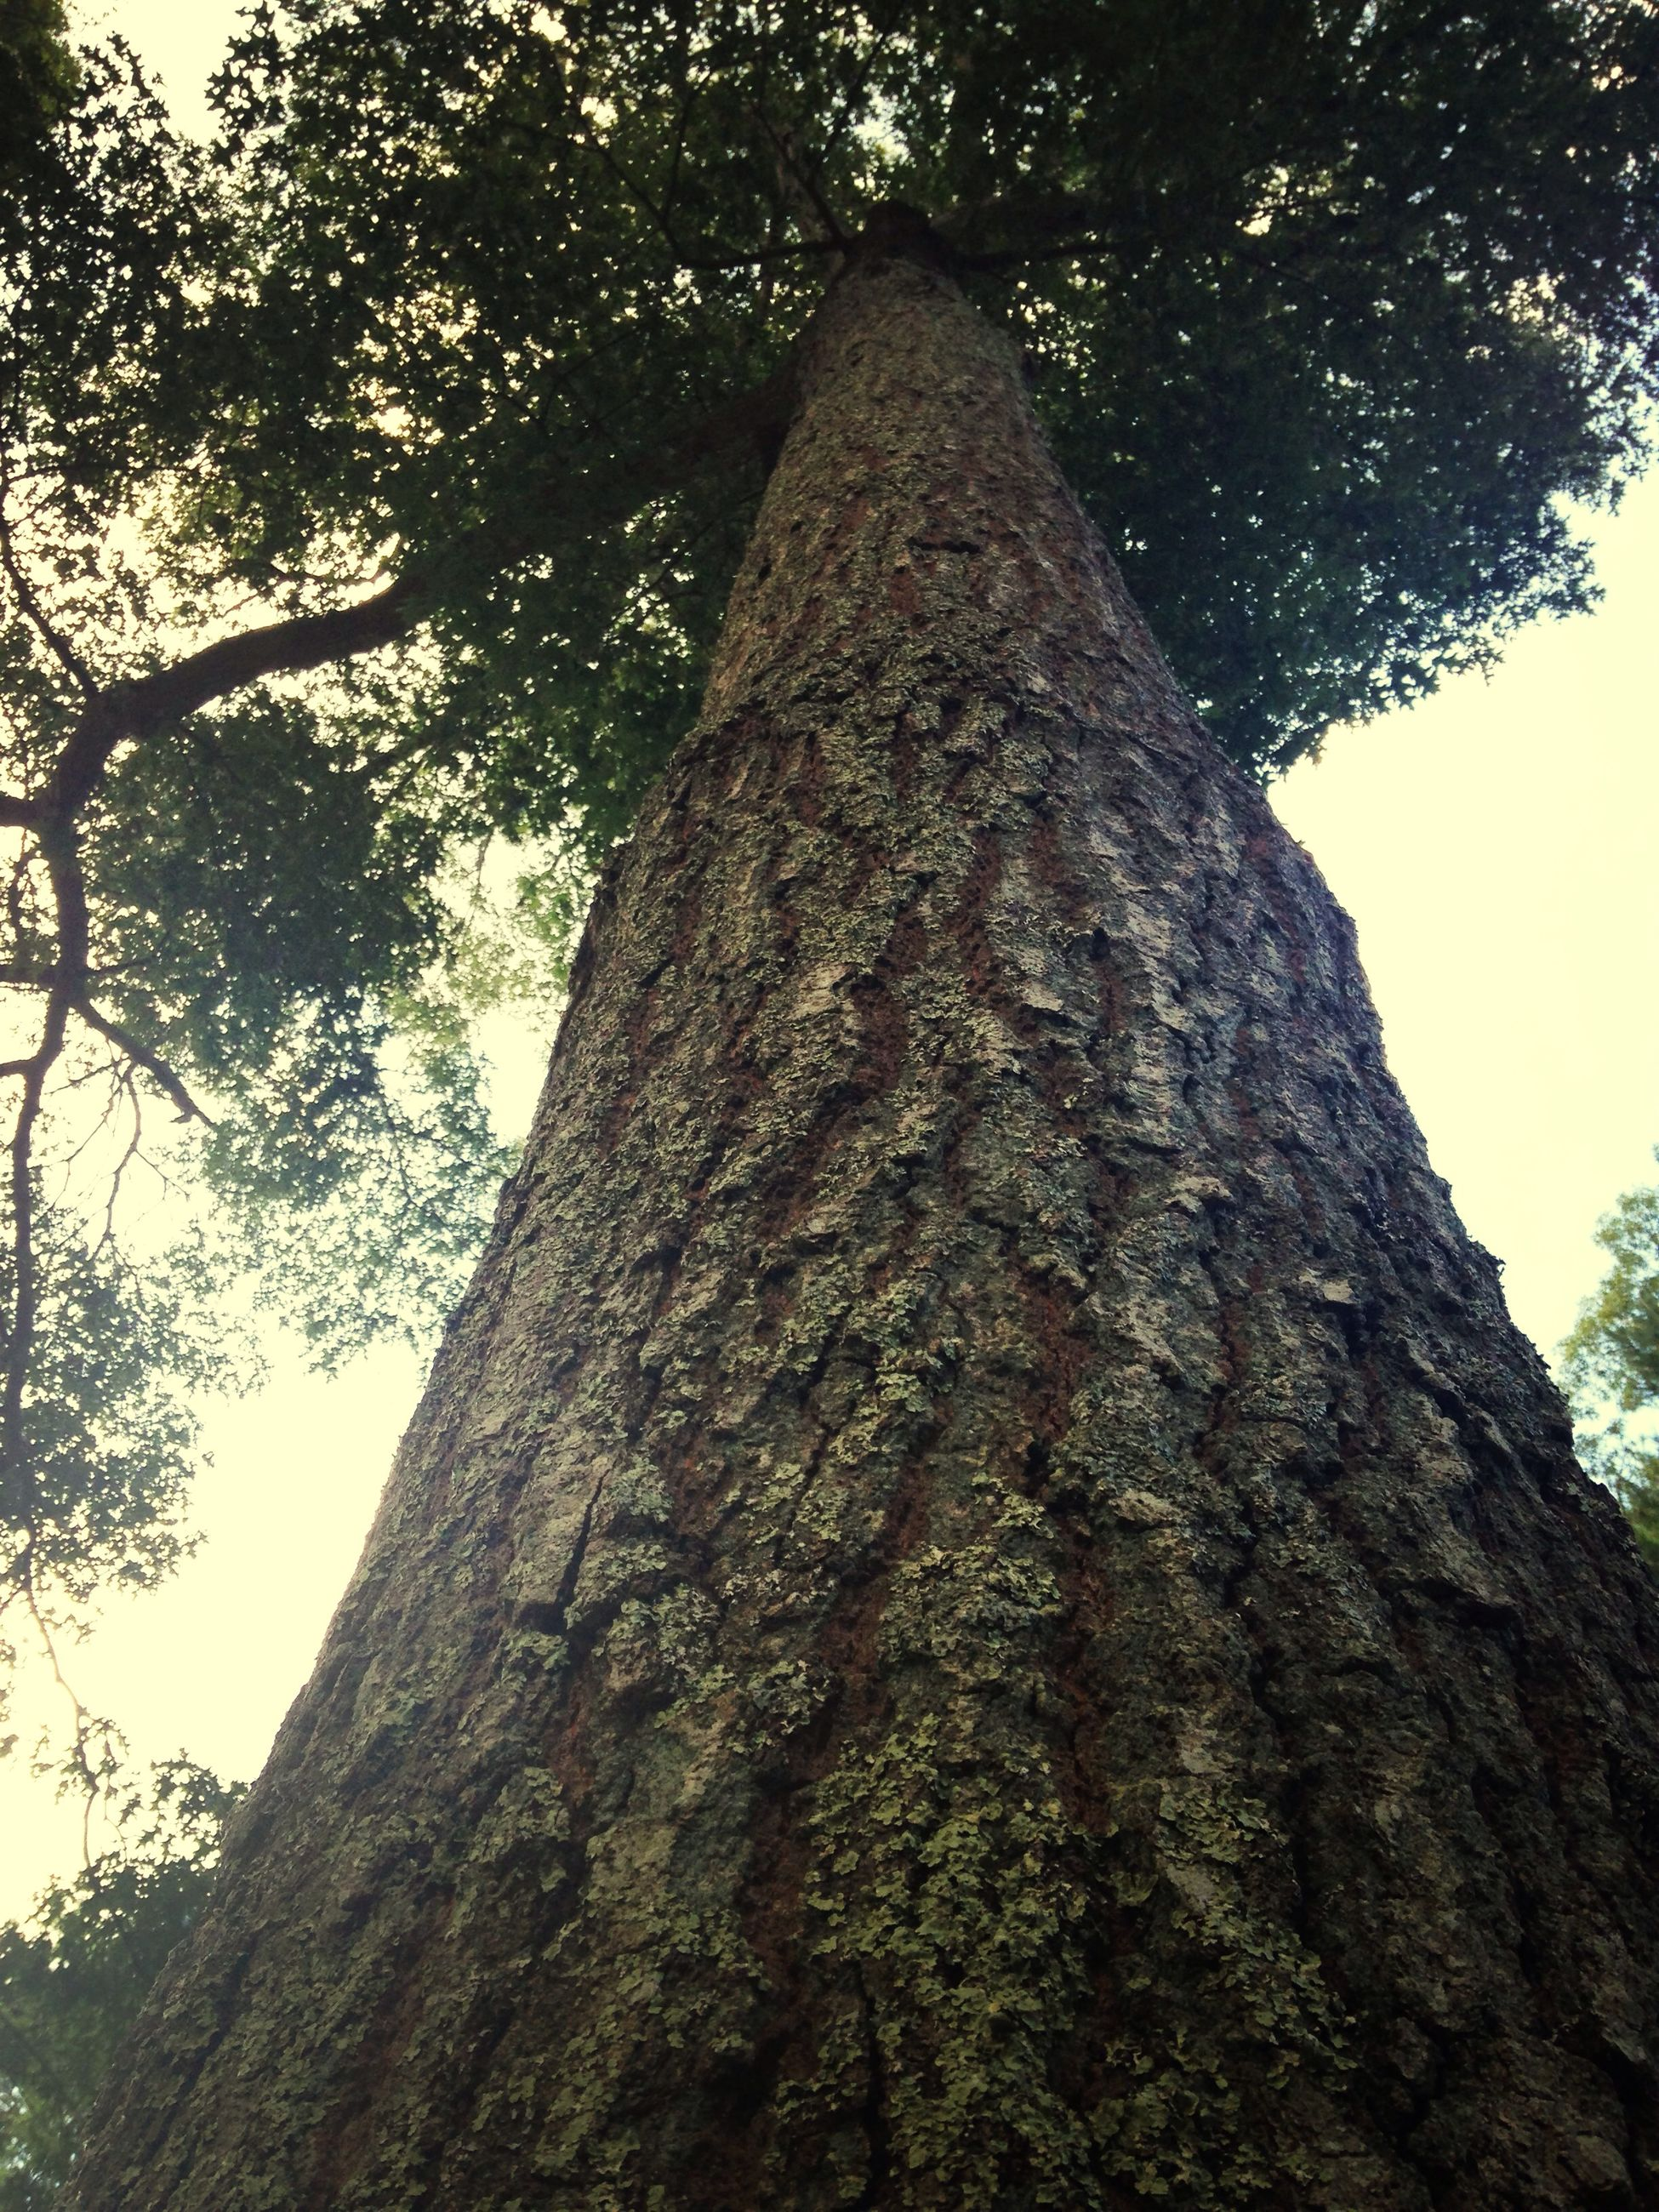 tree, low angle view, tree trunk, growth, sky, branch, tall - high, nature, textured, day, tranquility, bark, outdoors, forest, no people, tall, clear sky, sunlight, beauty in nature, close-up